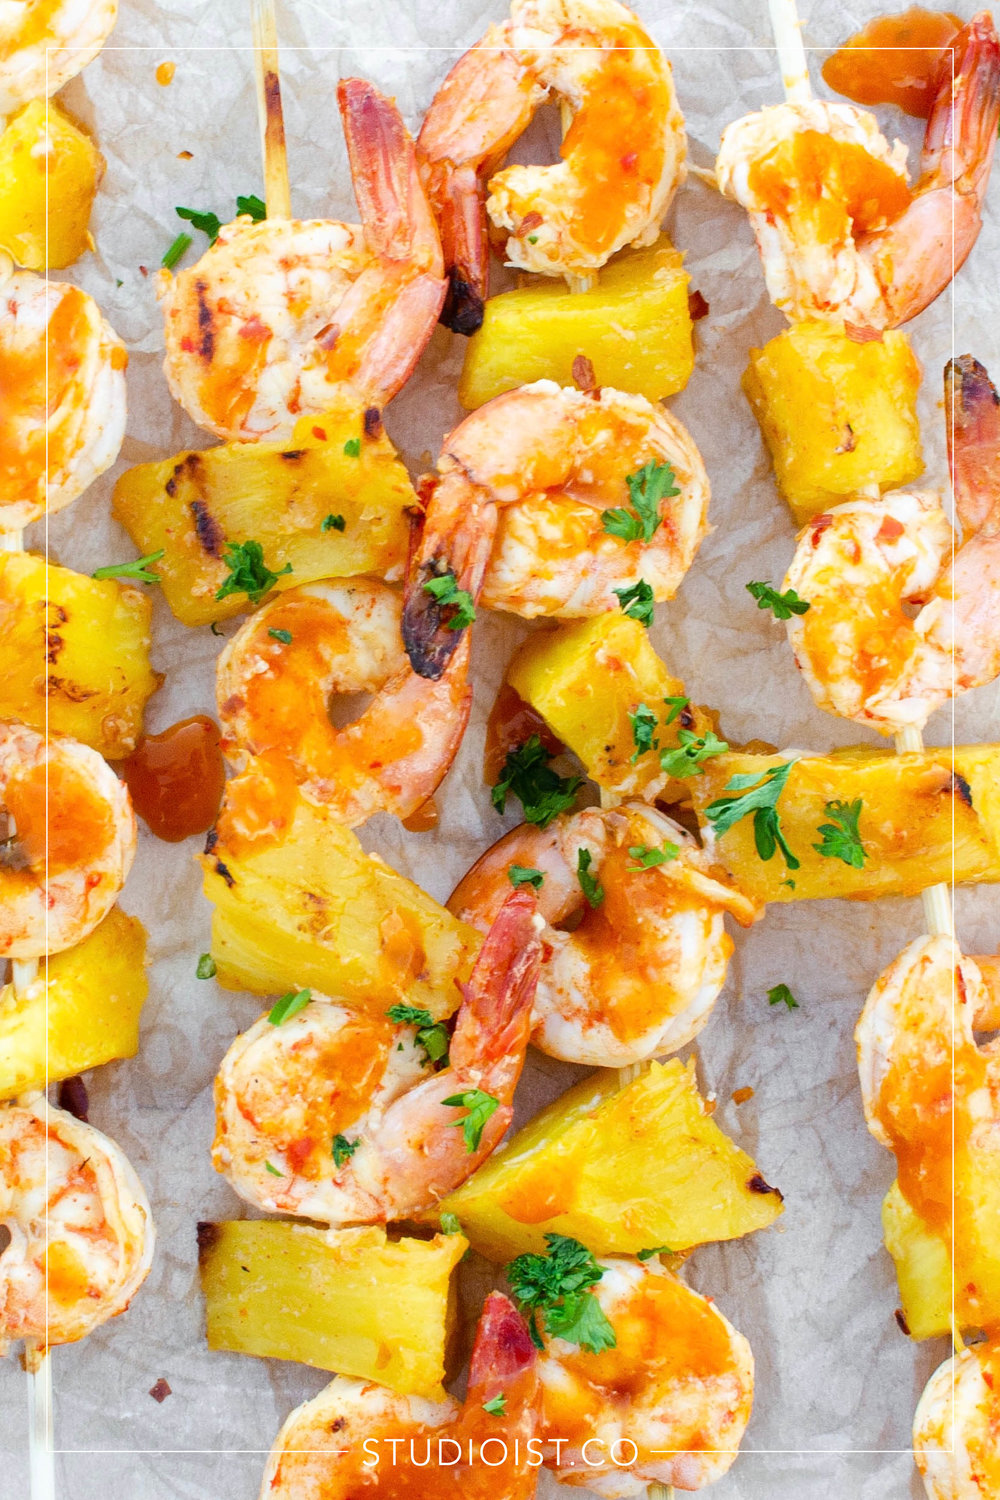 Studioist_Pinterest Design_Jerk Shrimp Skewers3.jpg